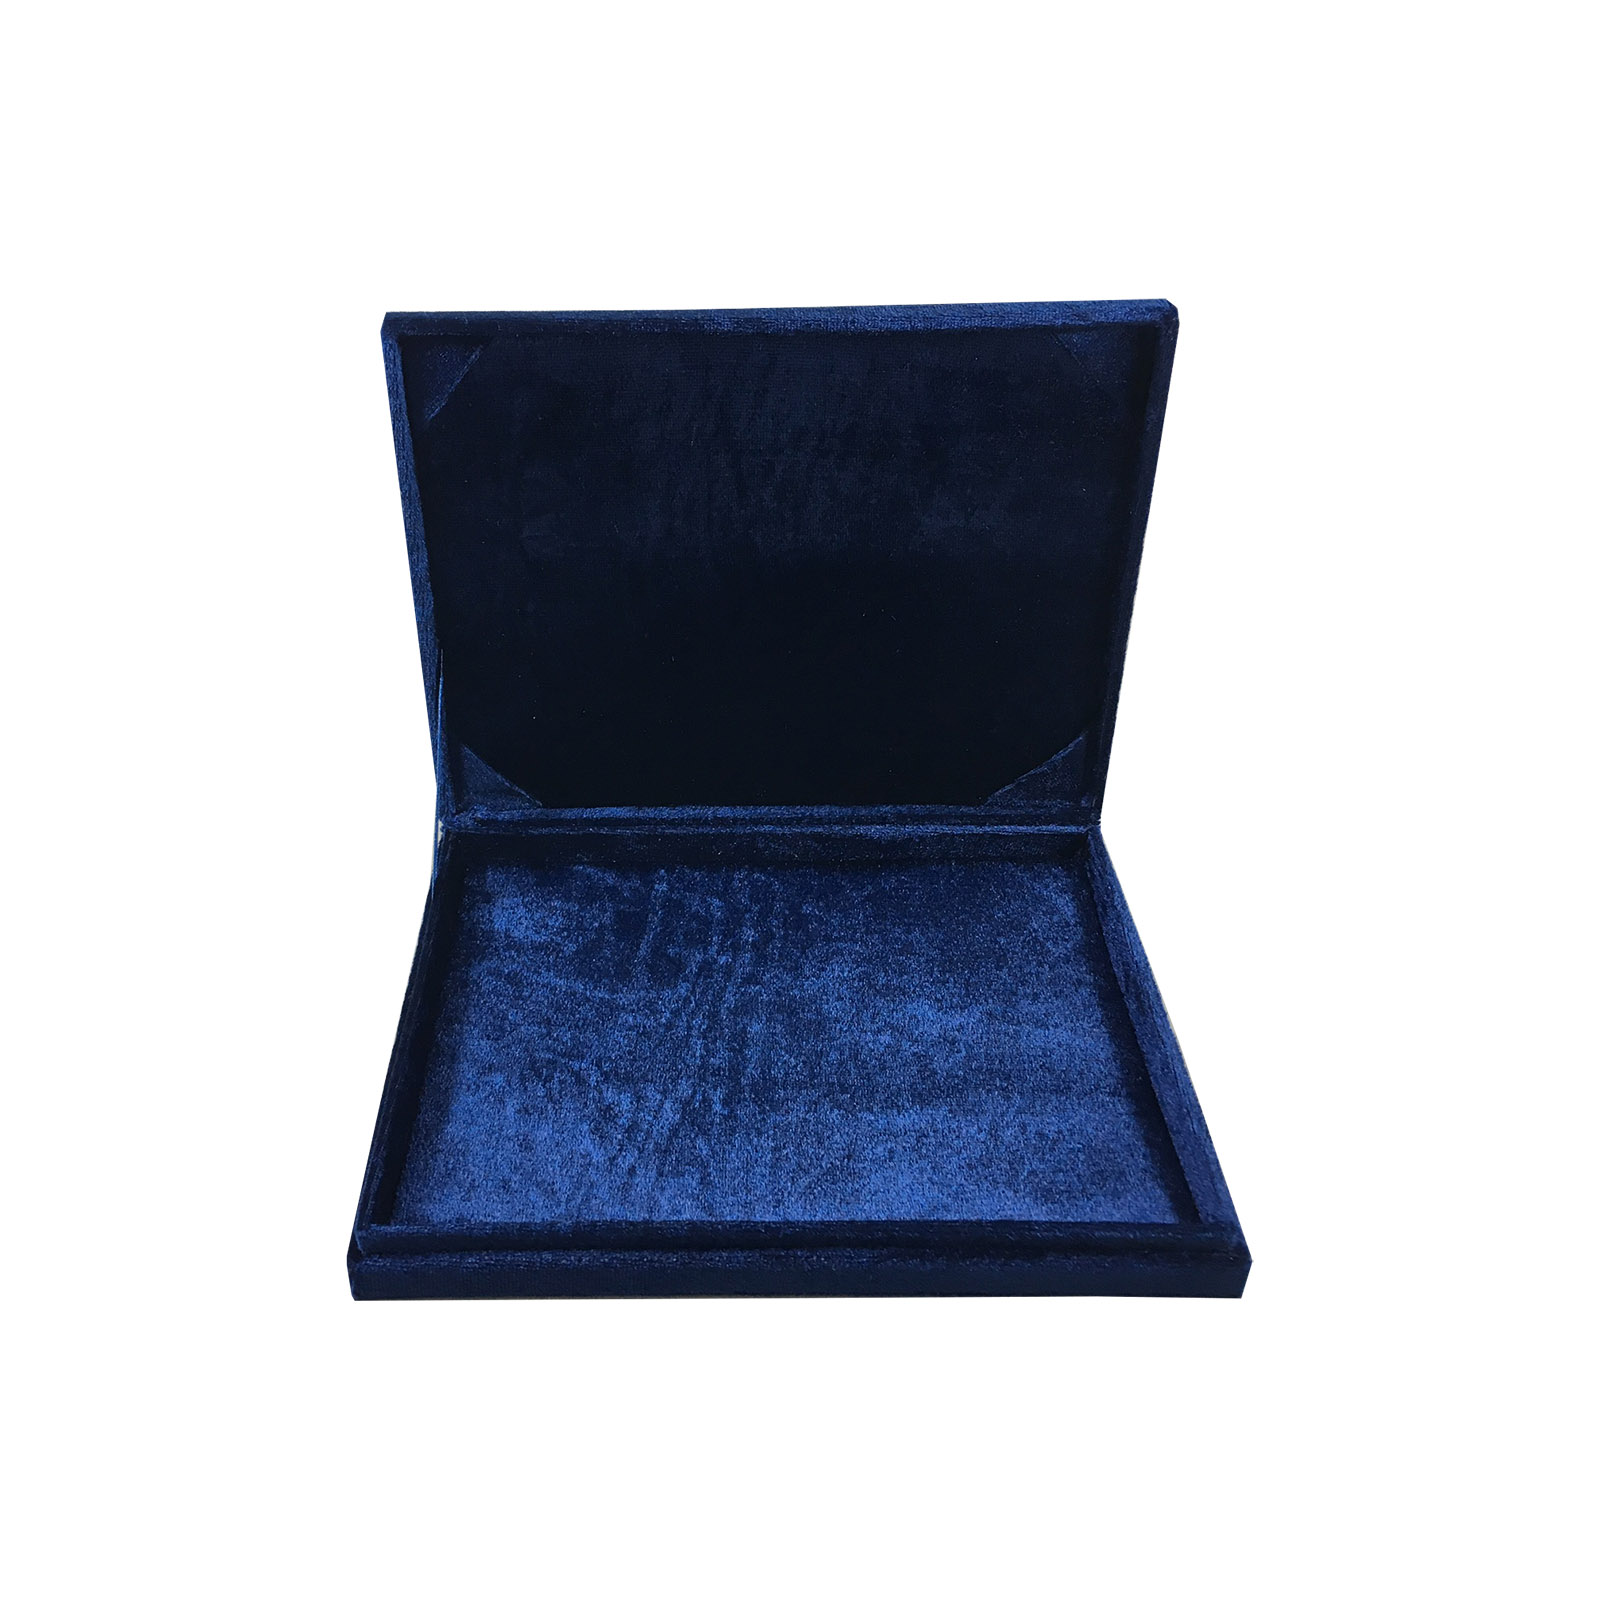 Navy blue velvet wedding box